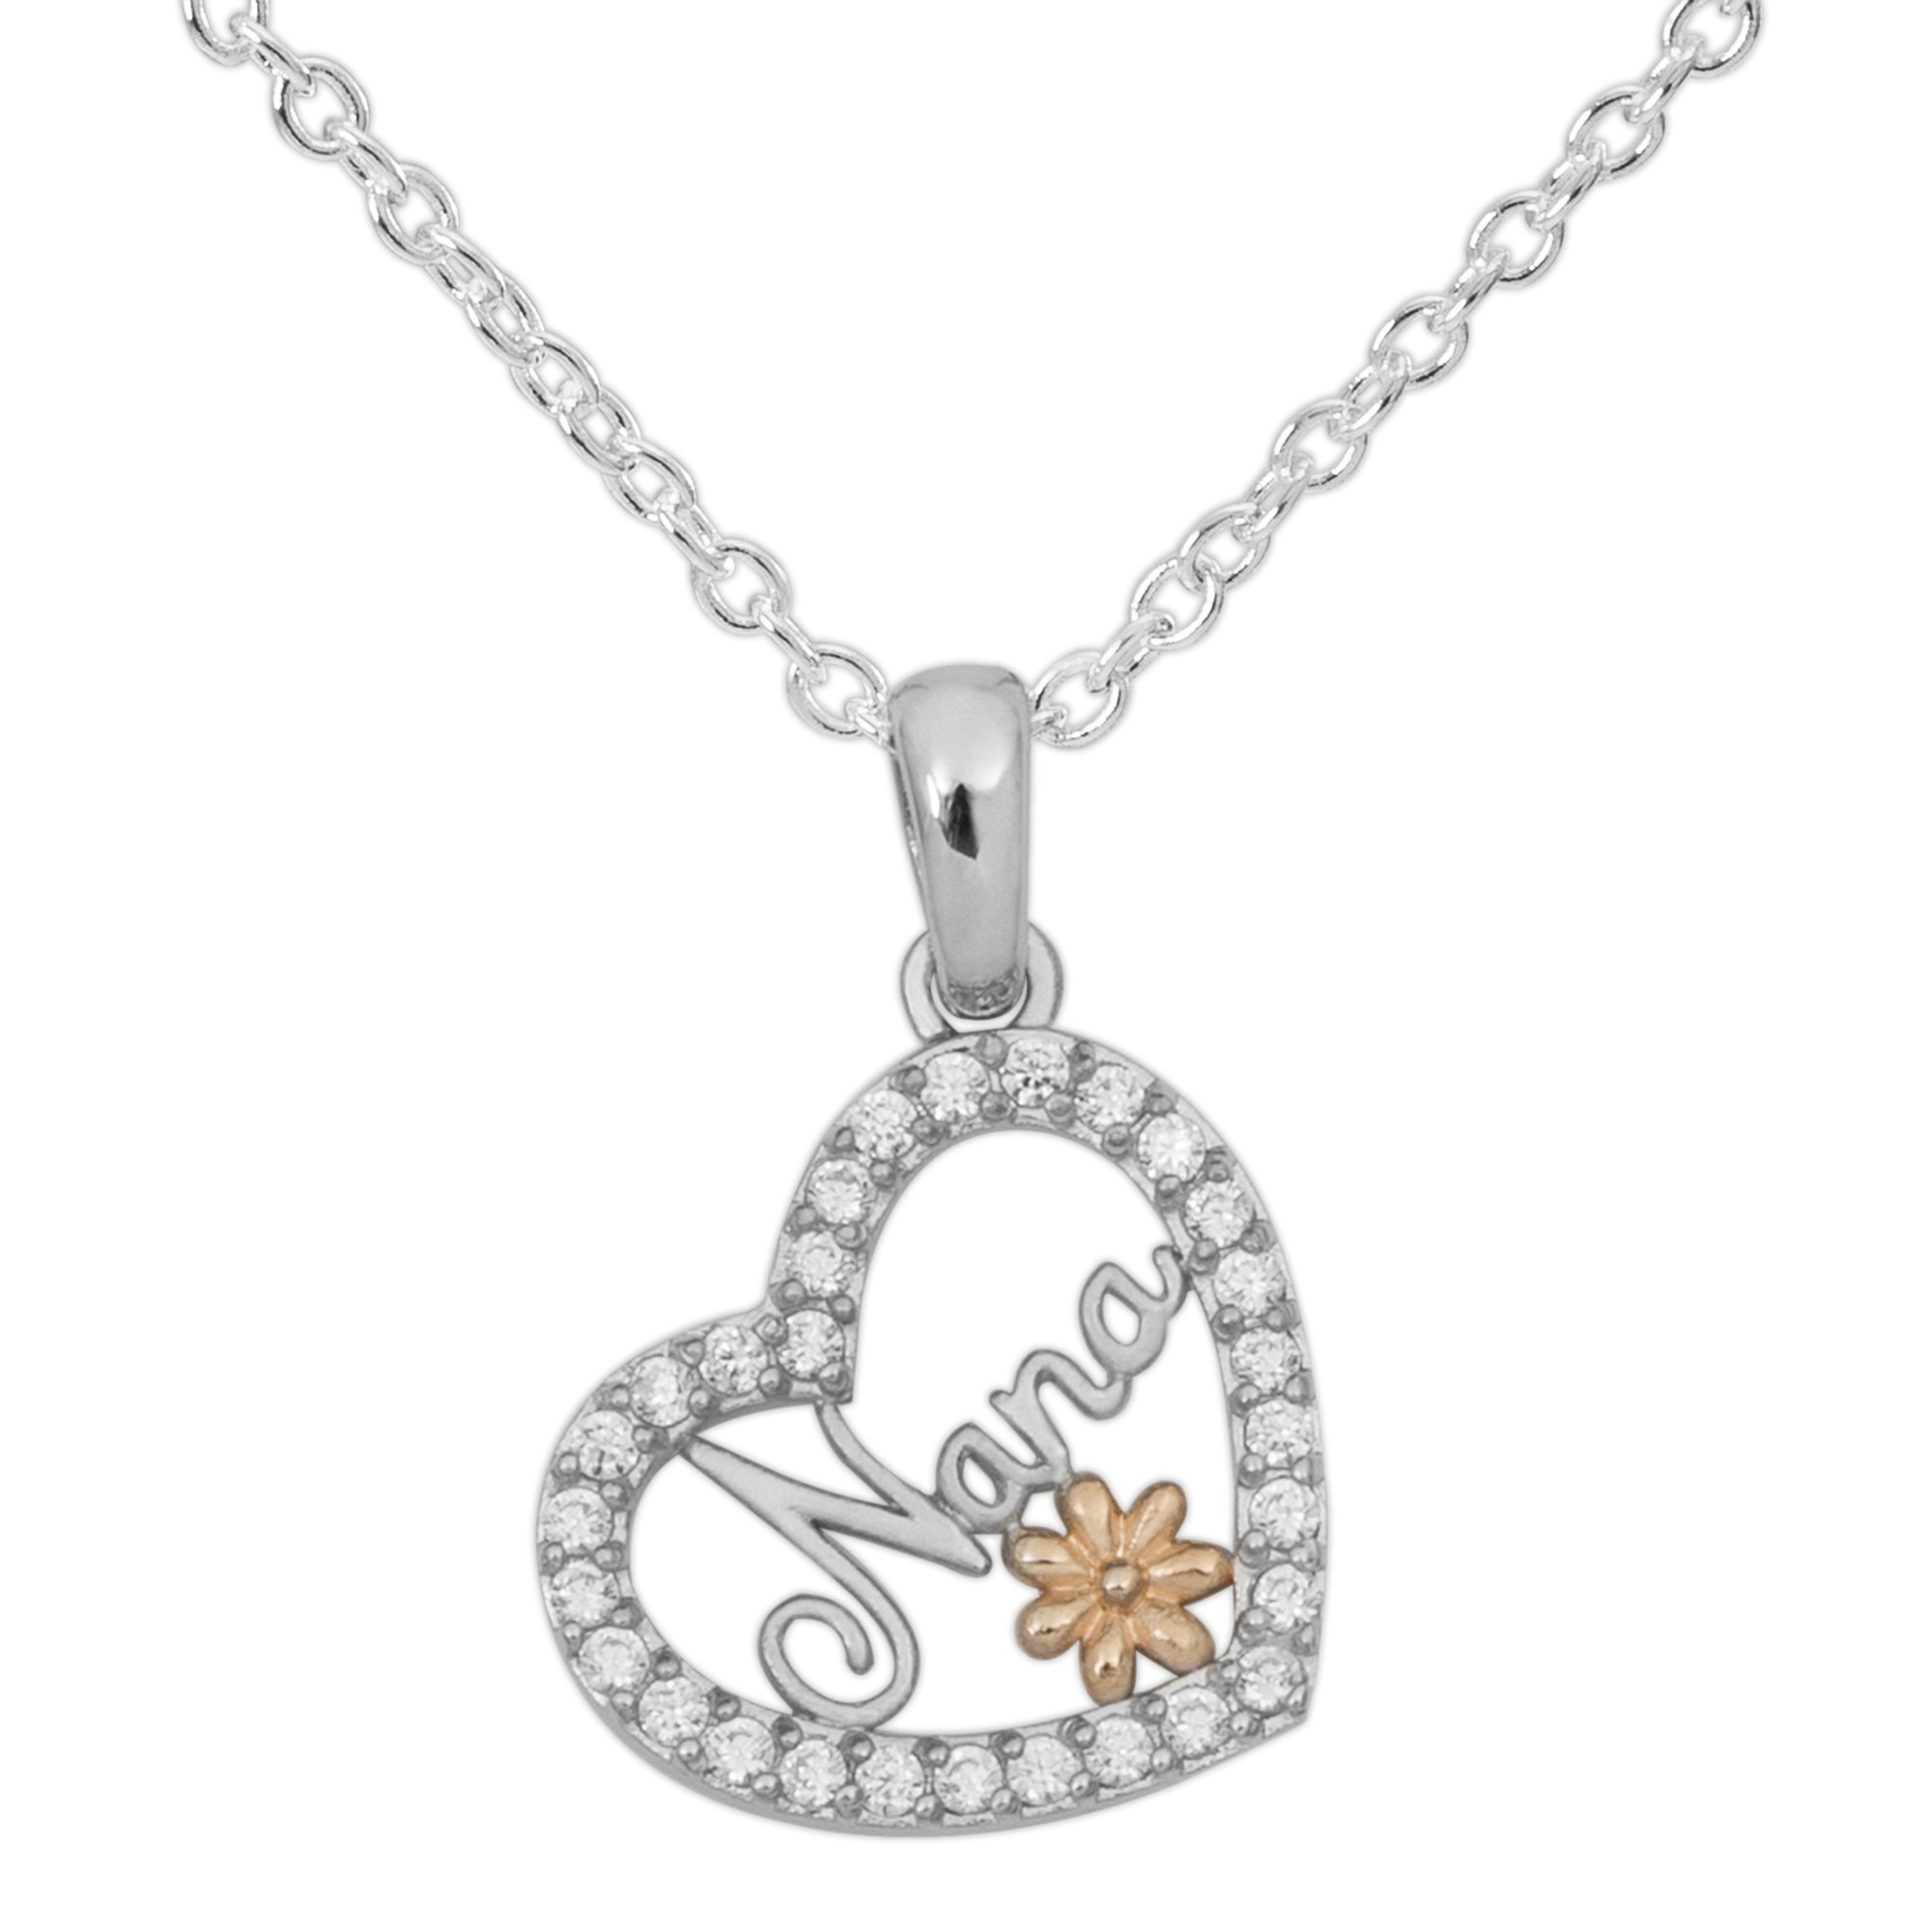 Hallmark Jewelry Women's Sterling Silver Clear Cubic Zirconia Nana Heart with Flower Pendant Necklace, 18''